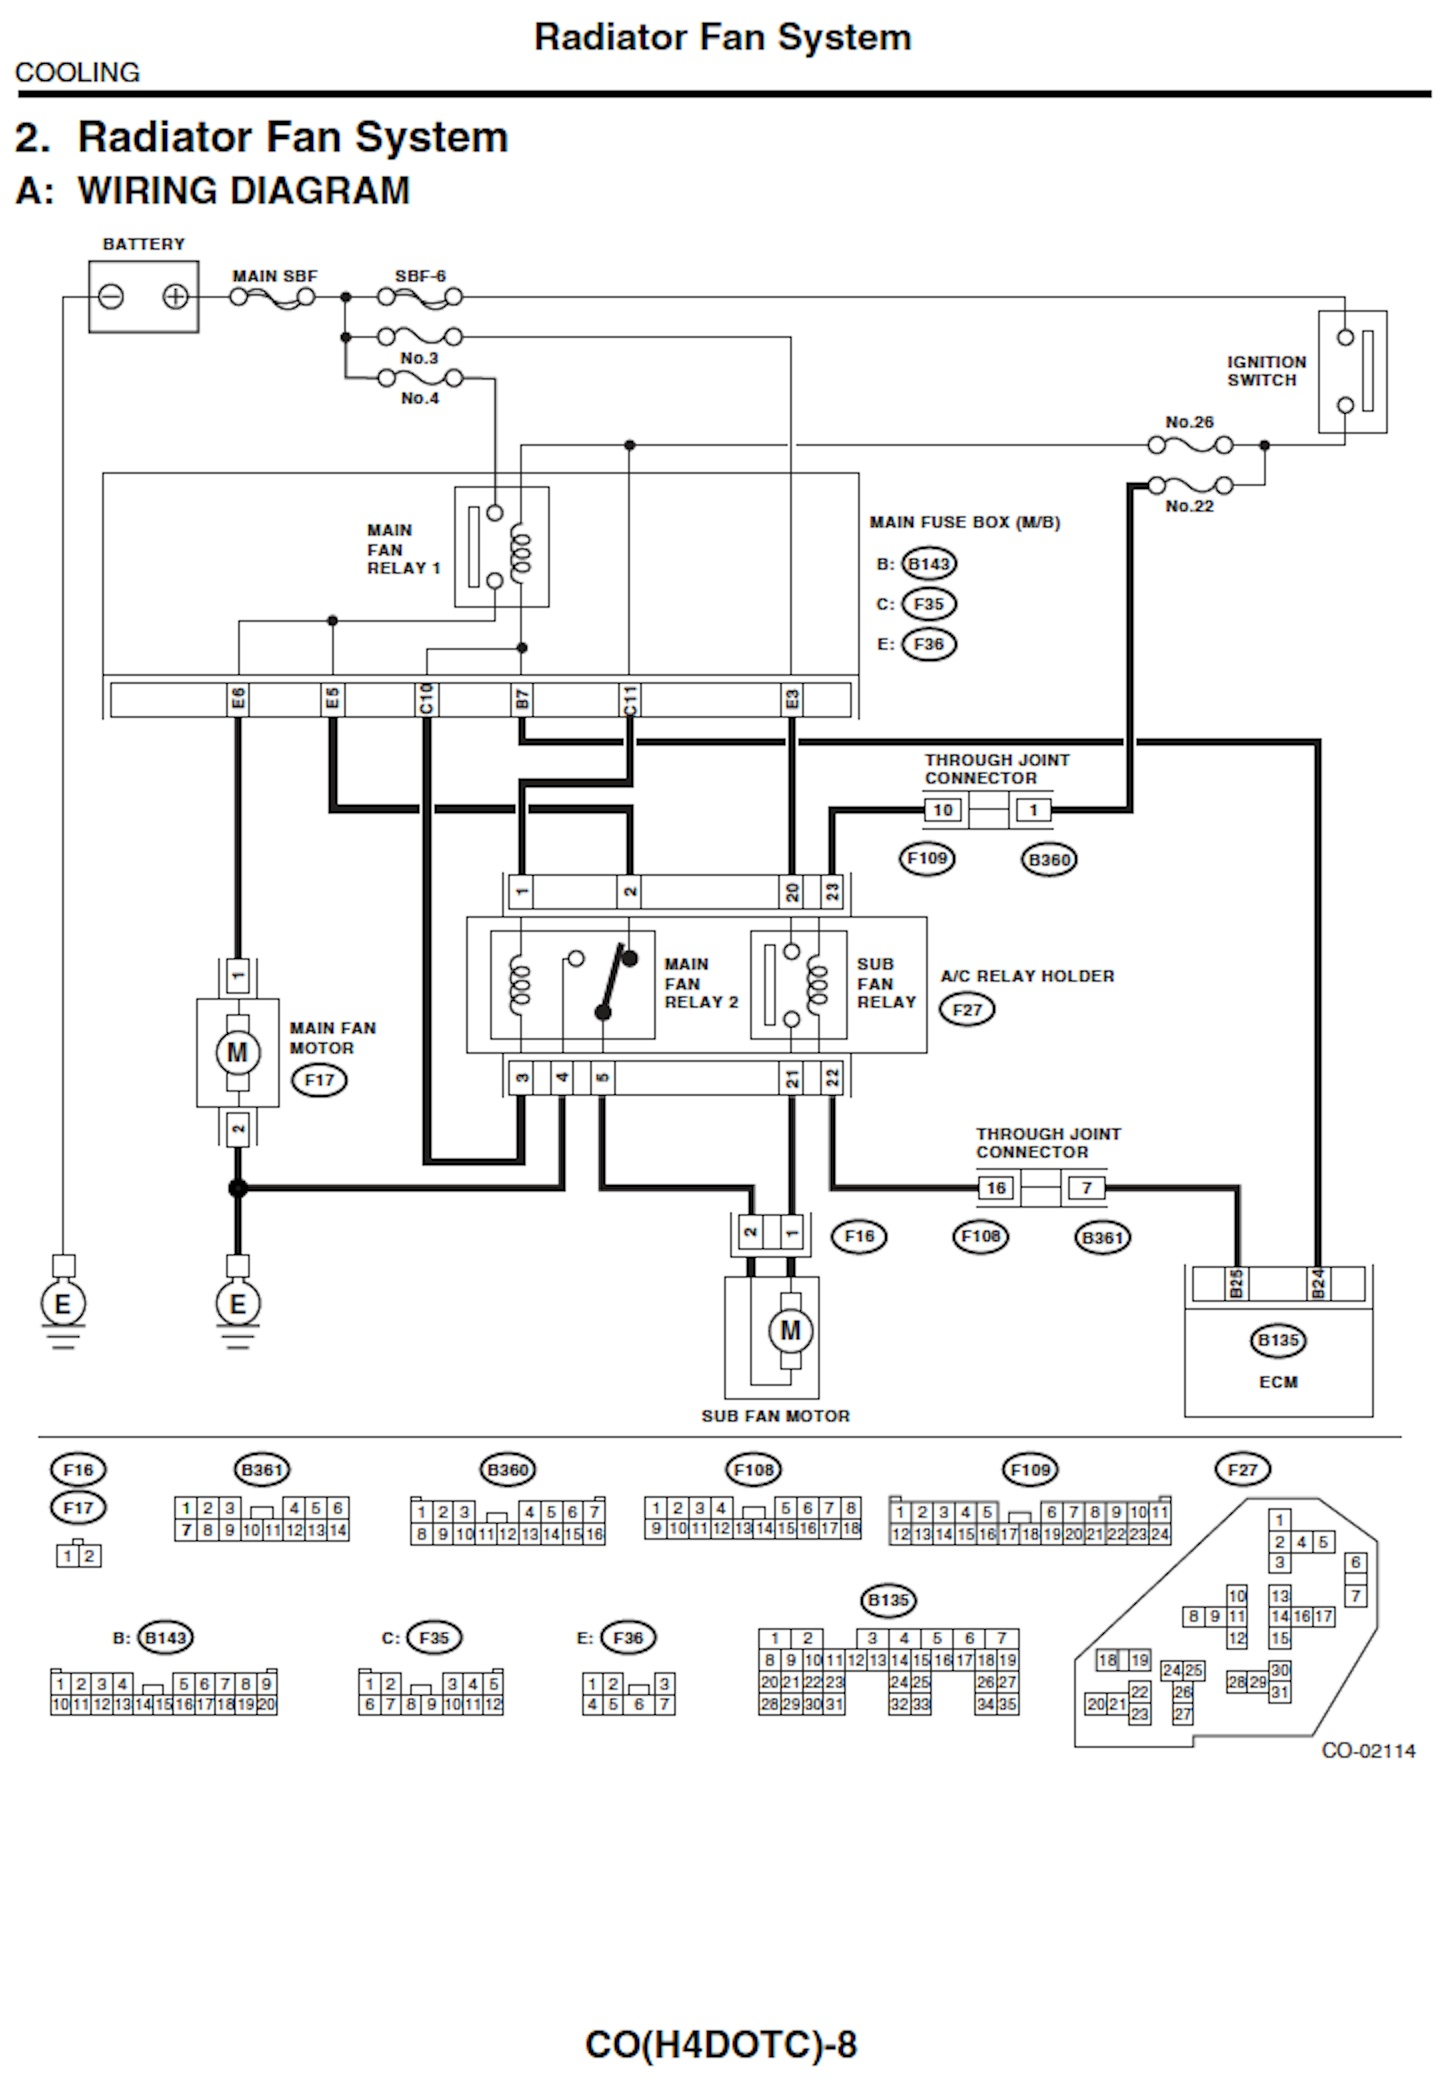 Radiator Sub Fan | Subaru Outback Forums | Wrx Relay Fan Wiring Diagram |  | Subaru Outback.org